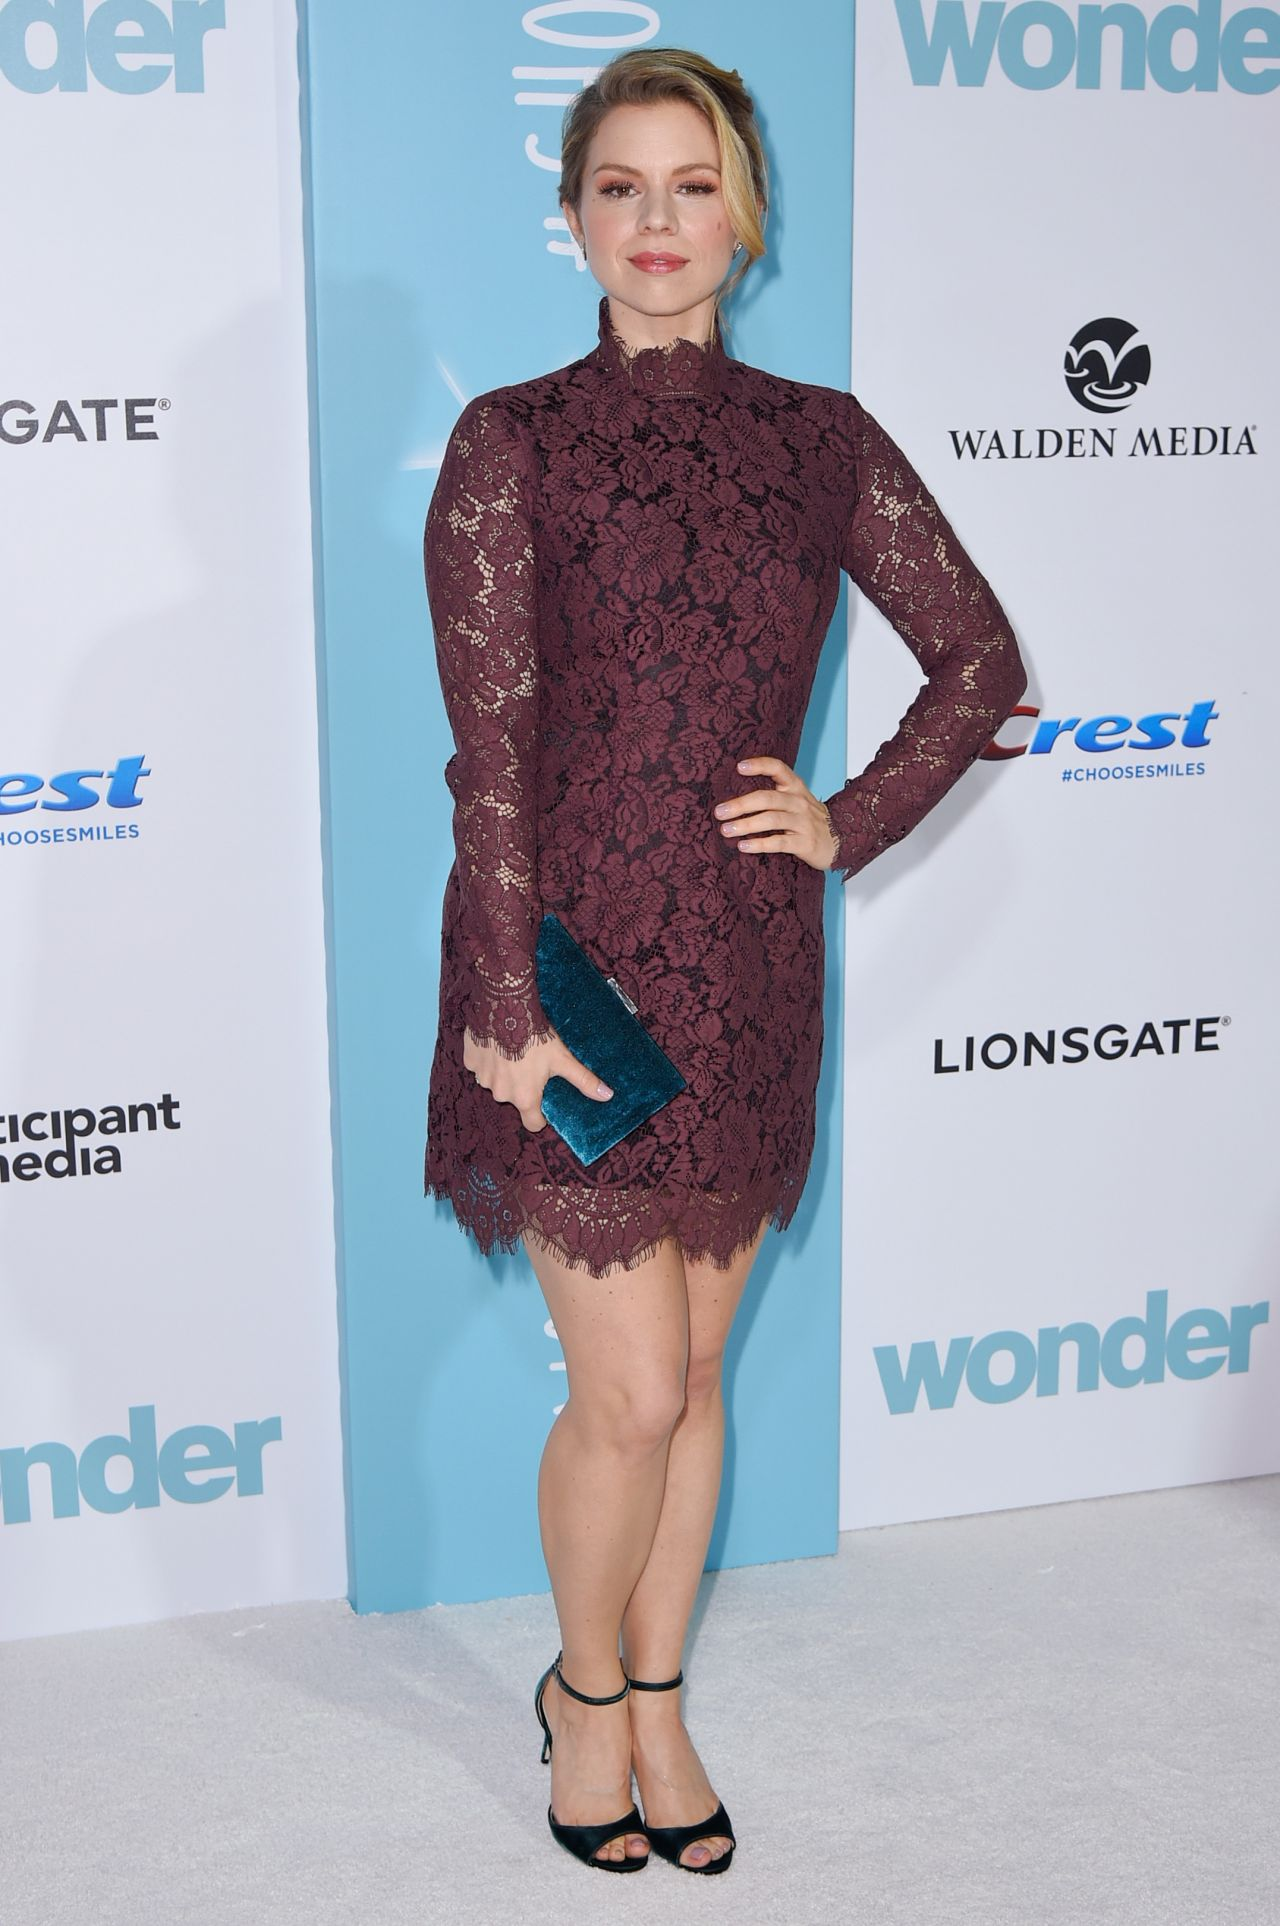 Ali Liebert Wonder Premiere In Westwood